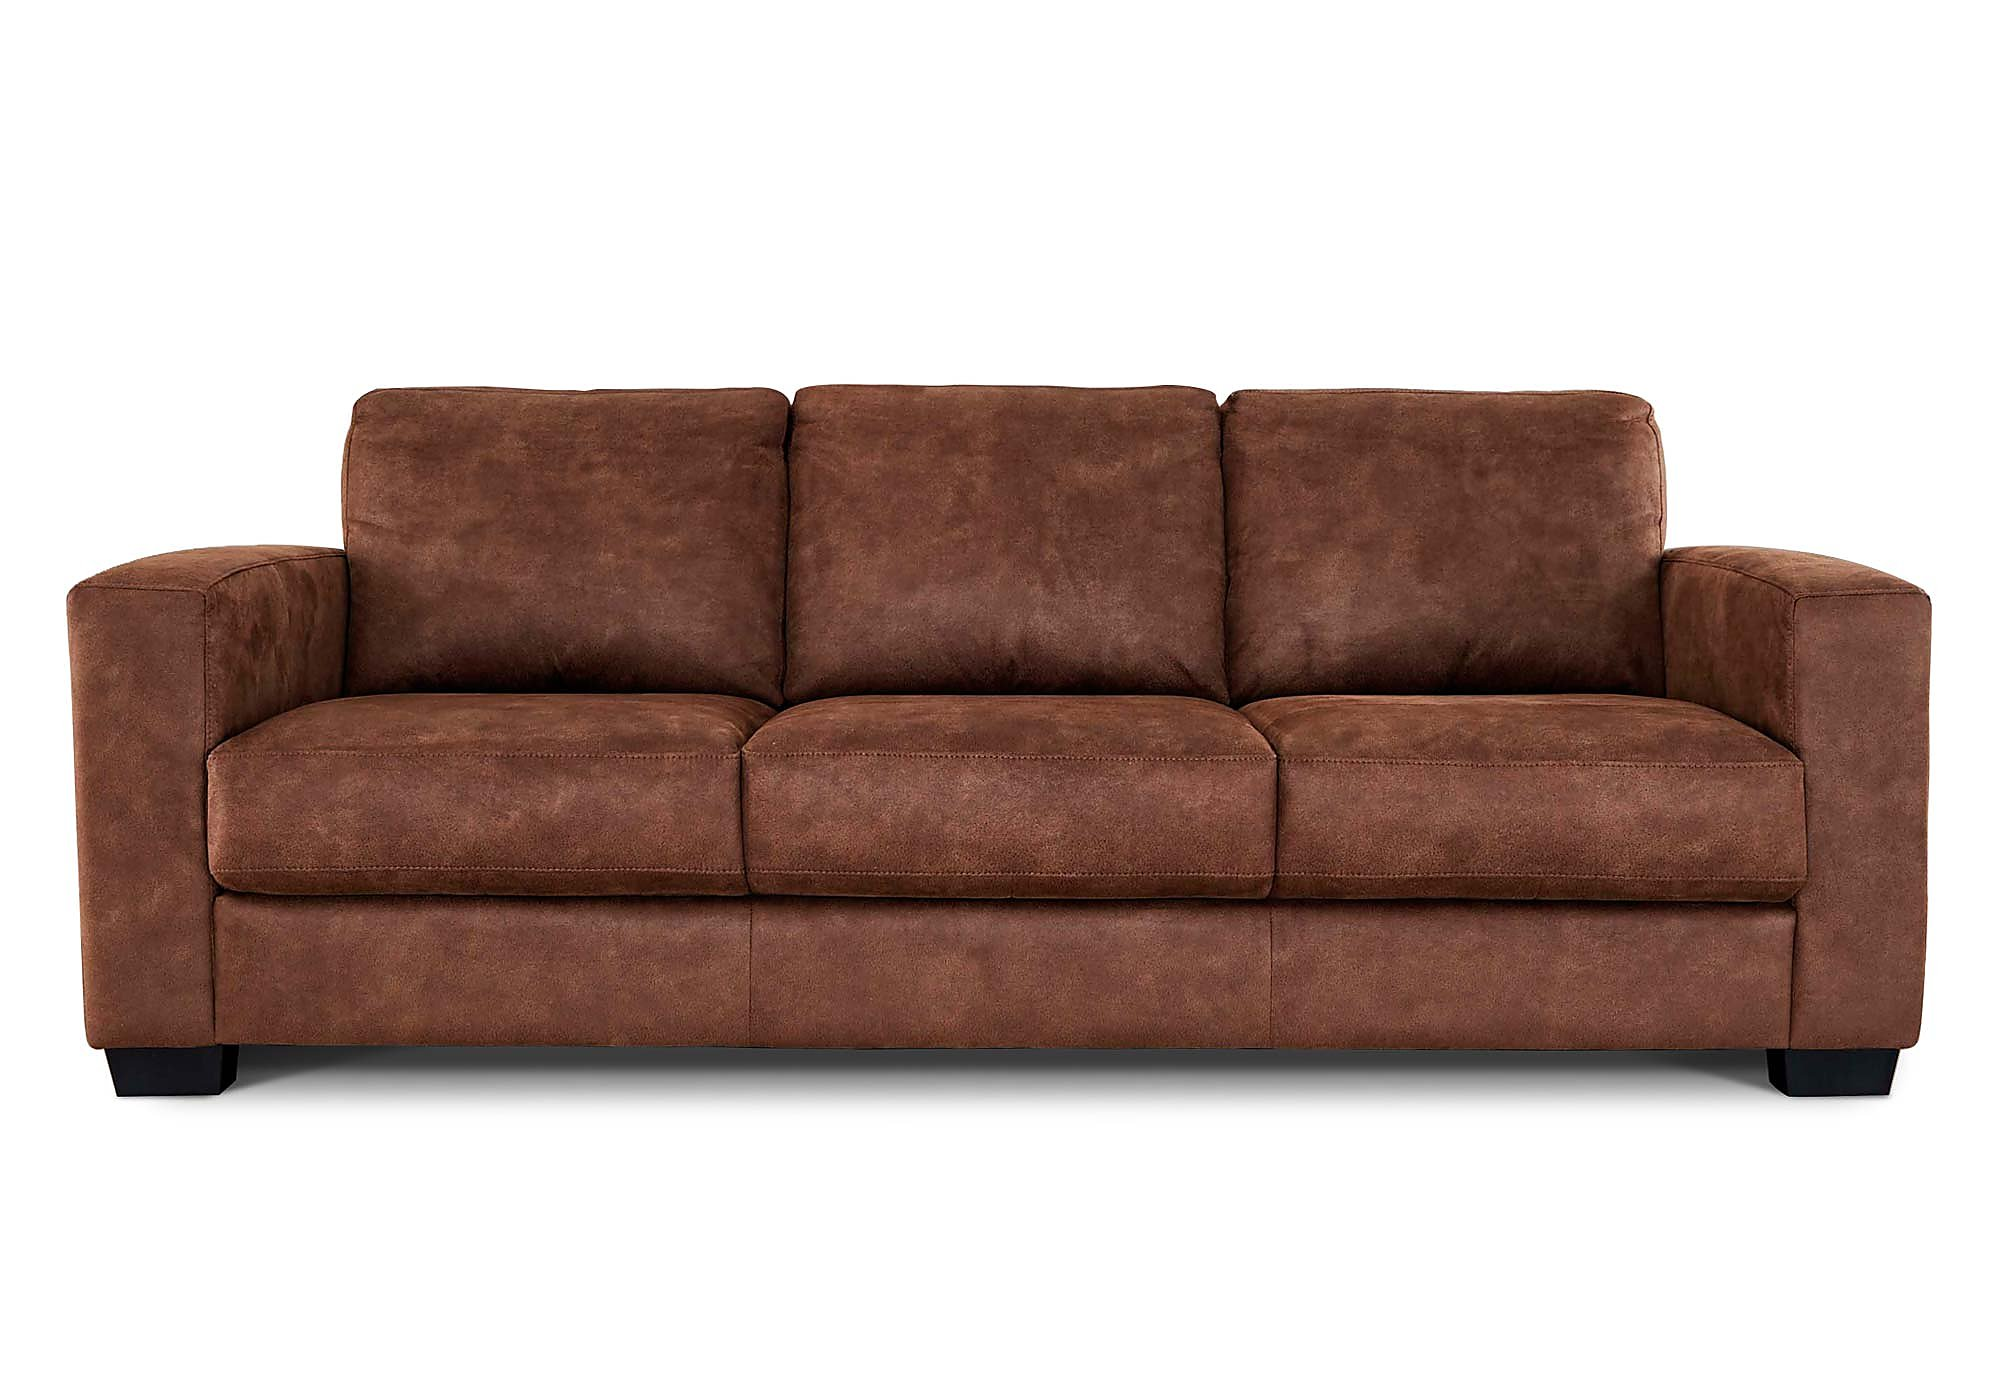 Dante 3 Seater Fabric Sofa & 2 Armchairs in  on FV